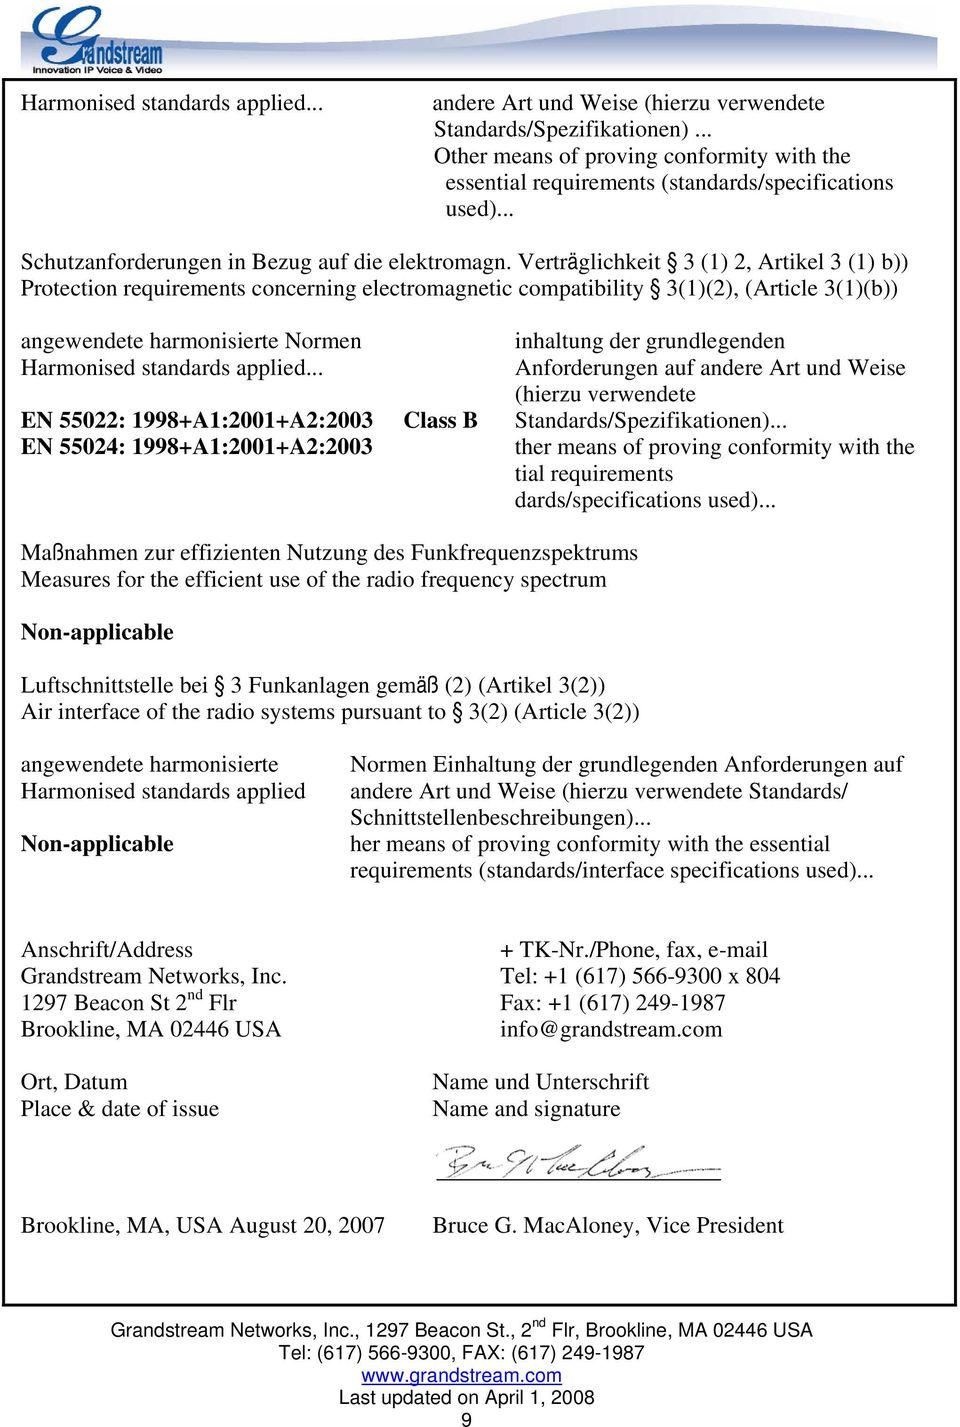 Verträglichkeit 3 (1) 2, Artikel 3 (1) b)) Protection requirements concerning electromagnetic compatibility 3(1)(2), (Article 3(1)(b)) angewendete harmonisierte Normen inhaltung der grundlegenden